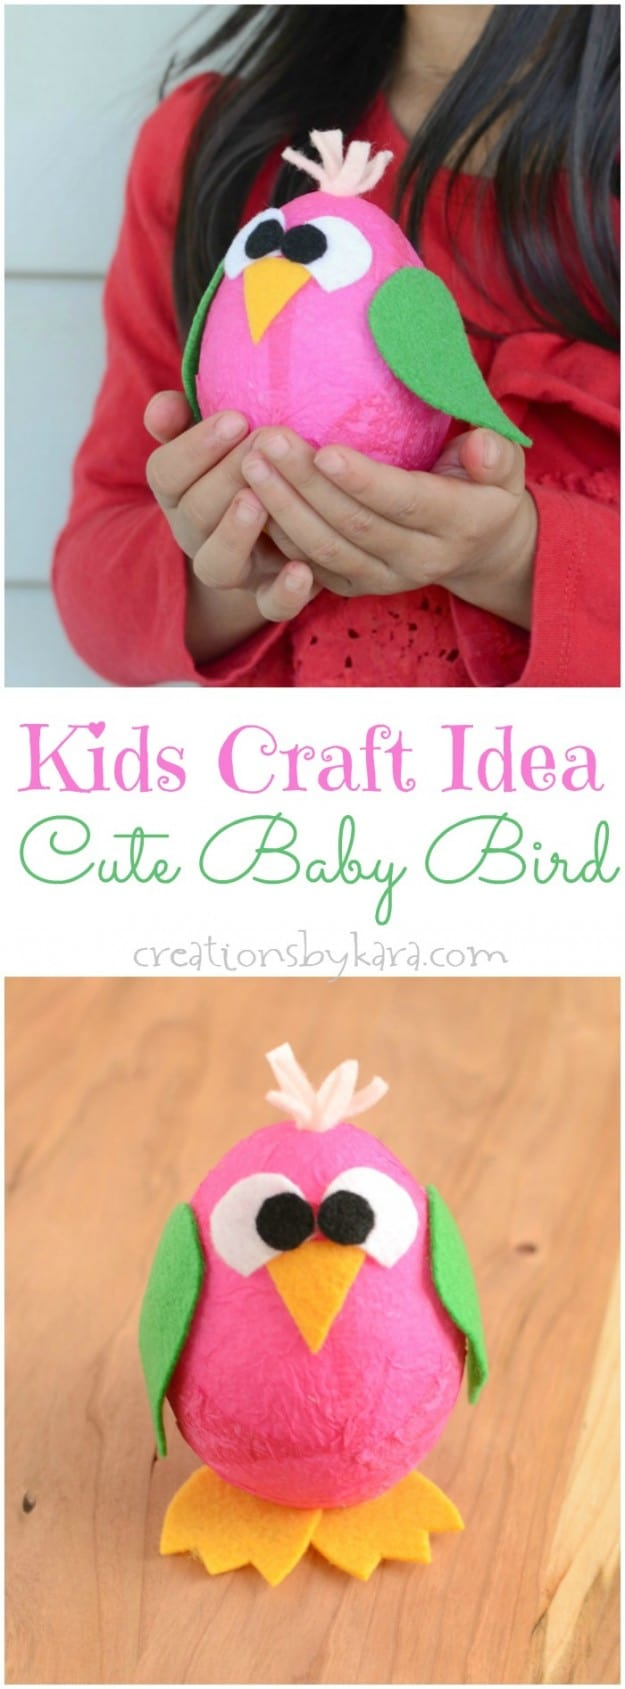 Easy Kids Craft Idea- Cute Baby Bird